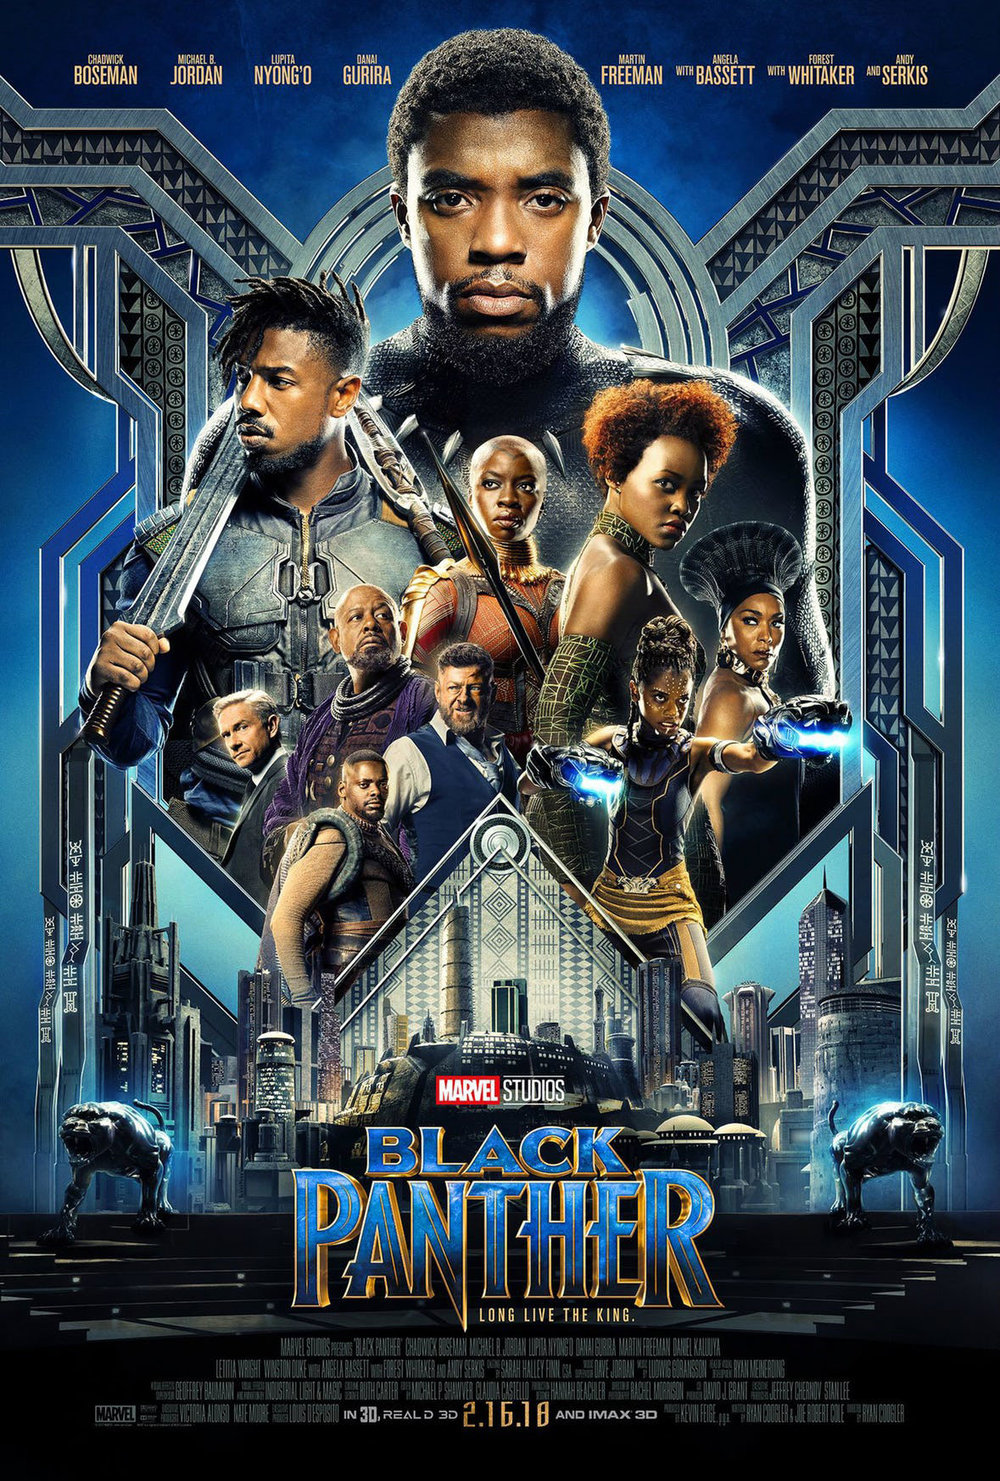 Black-Panther-poster-main-xl.jpg